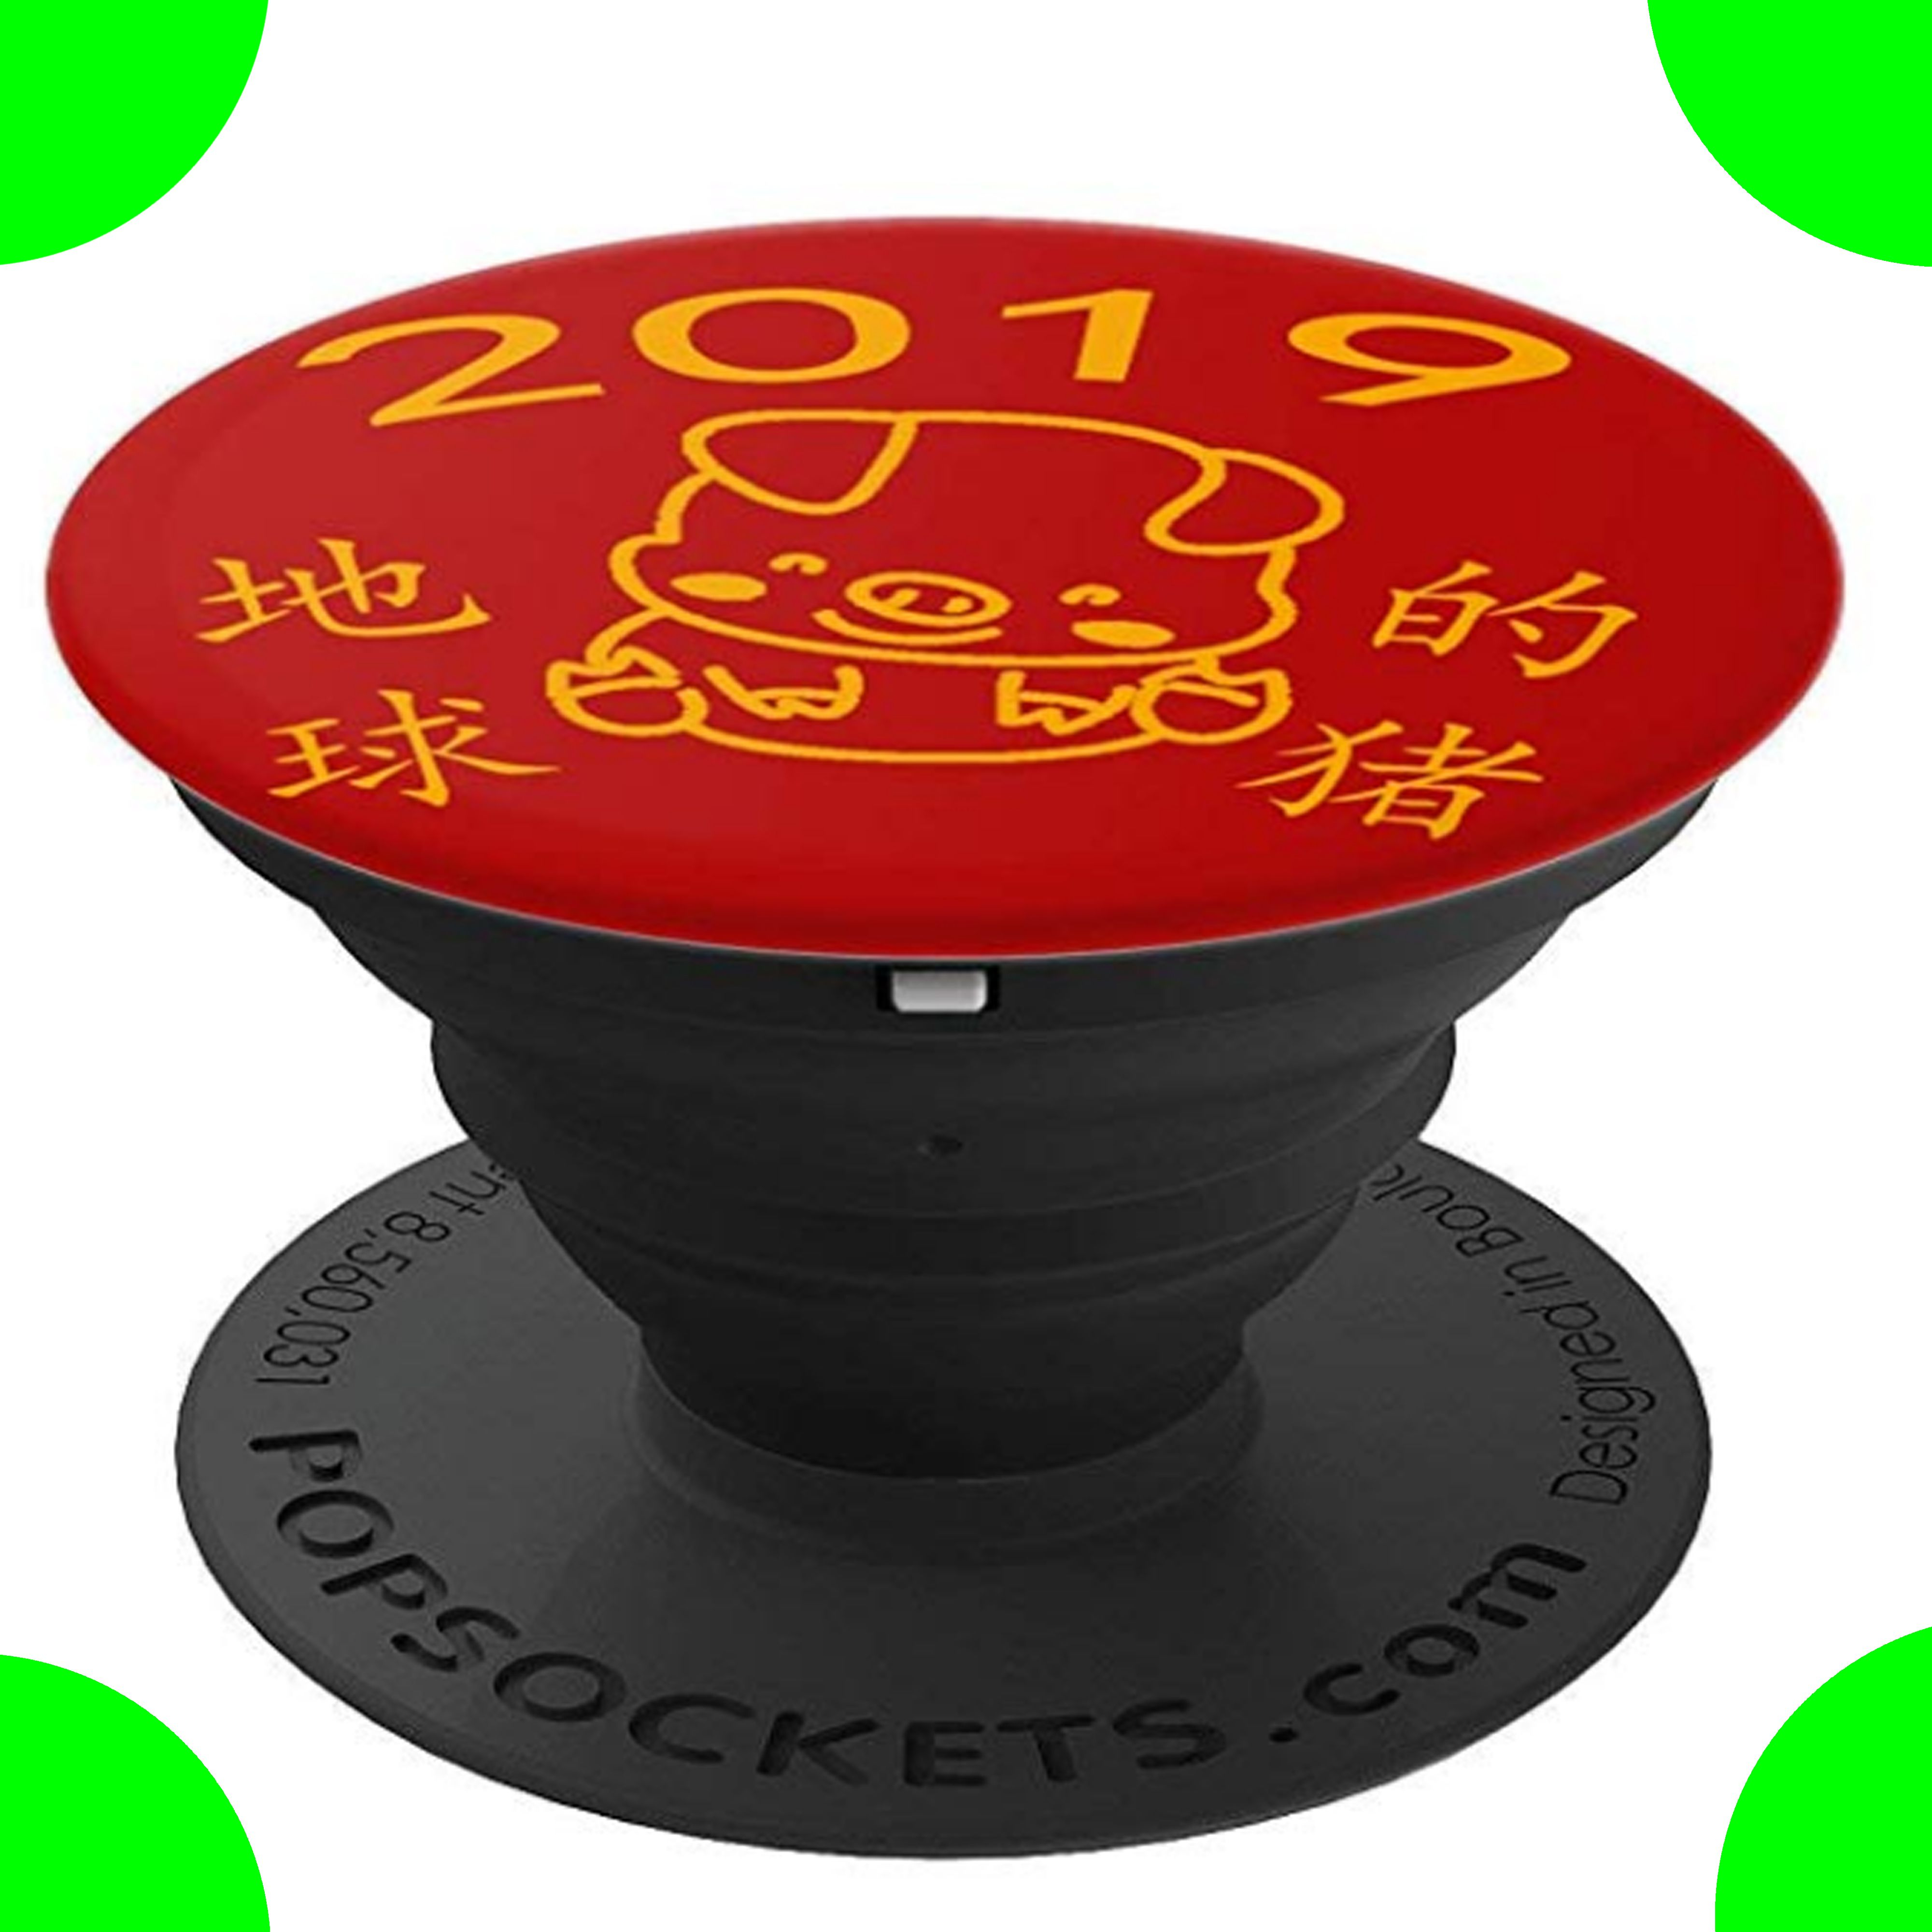 chinese new year 2019 popsocket gear gadget design